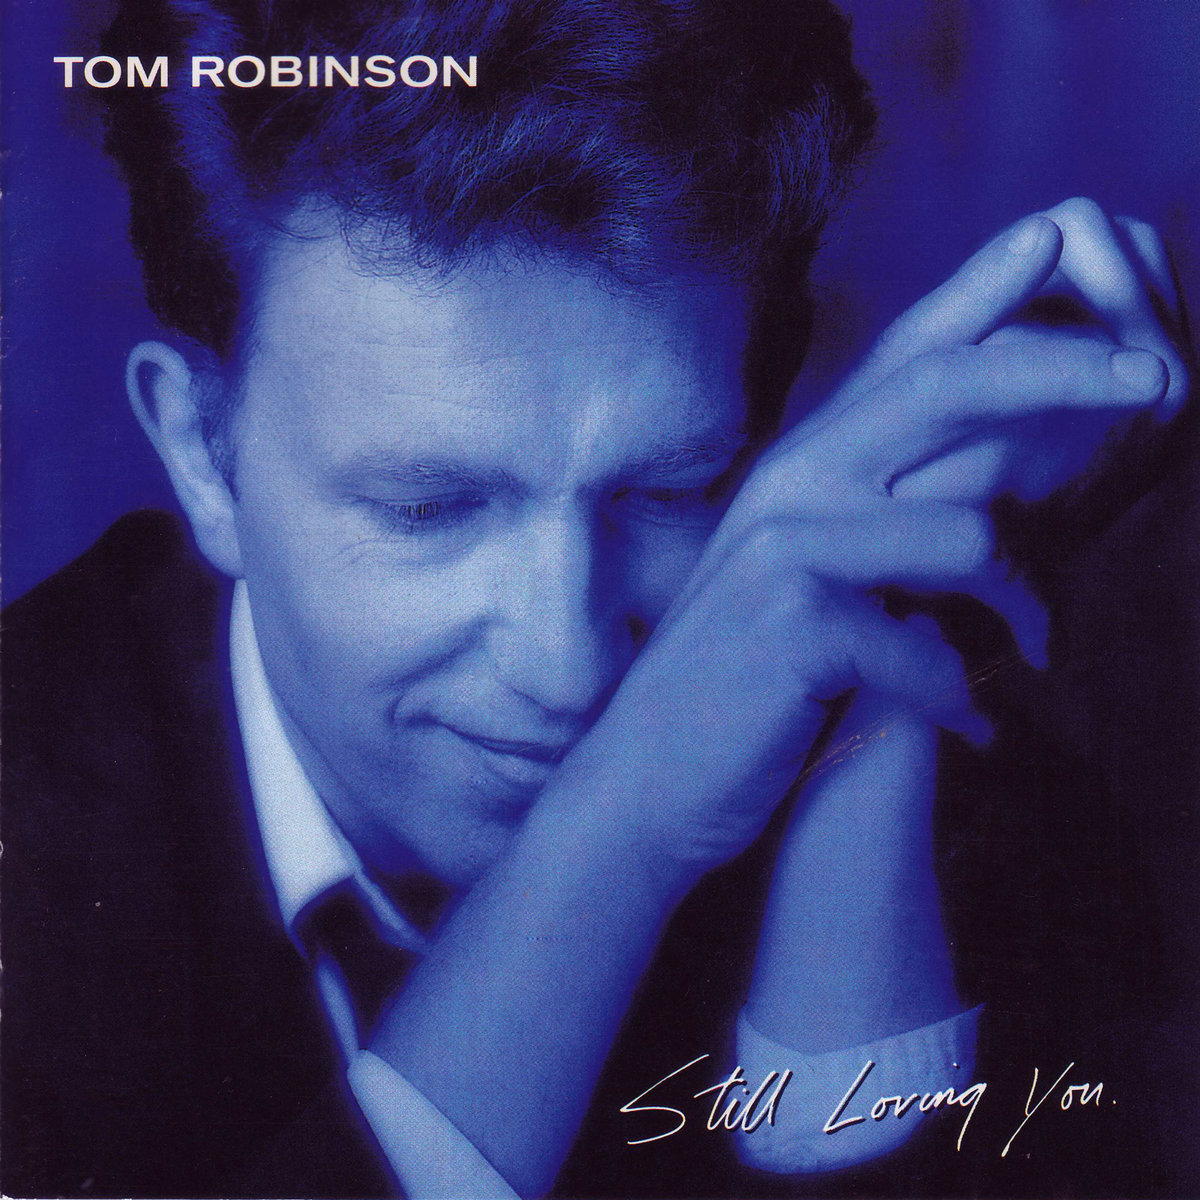 innocence of tom robinson The mockingbird's only purpose is to make music for people to enjoy, so by killing one, innocence is destroyed  in comparison, tom robinson,.